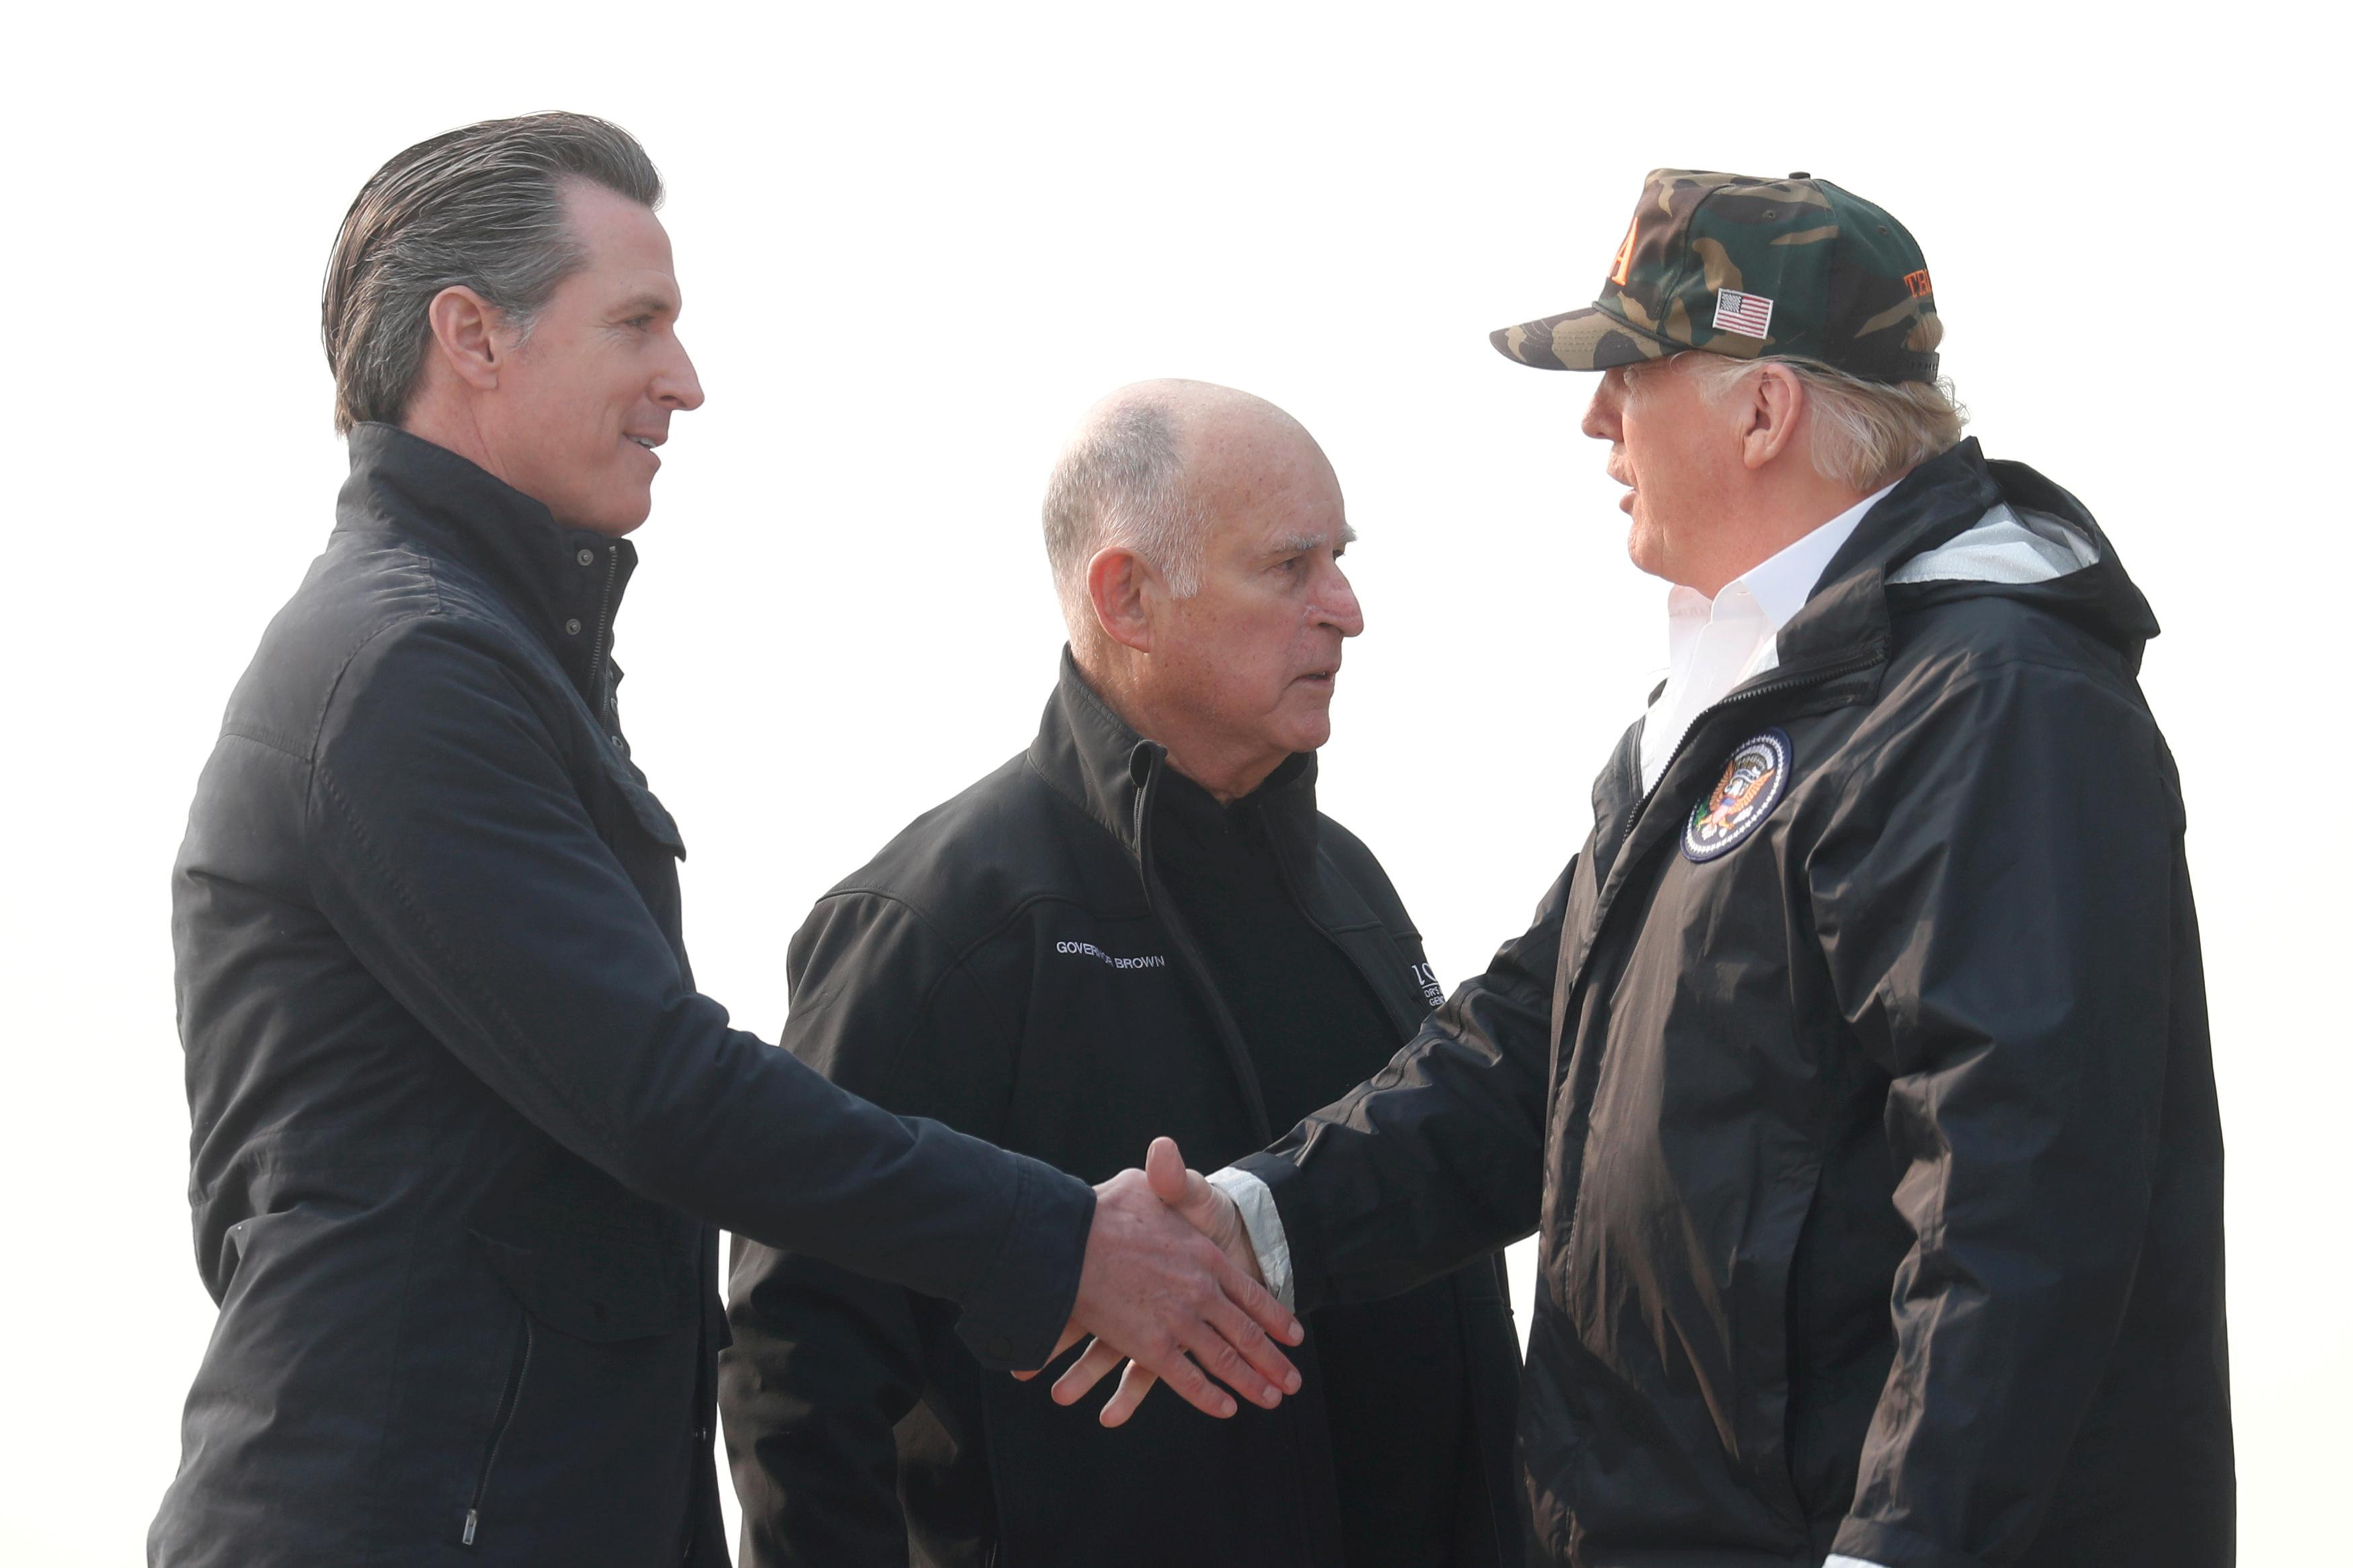 U.S. President Donald Trump shakes hands with California's then-Governor-elect Gavin Newsom (L) after greeting then-Governor Jerry Brown (C) upon arriving at Beale Air Force Base, California, U.S., November 17, 2018. Leah Millis